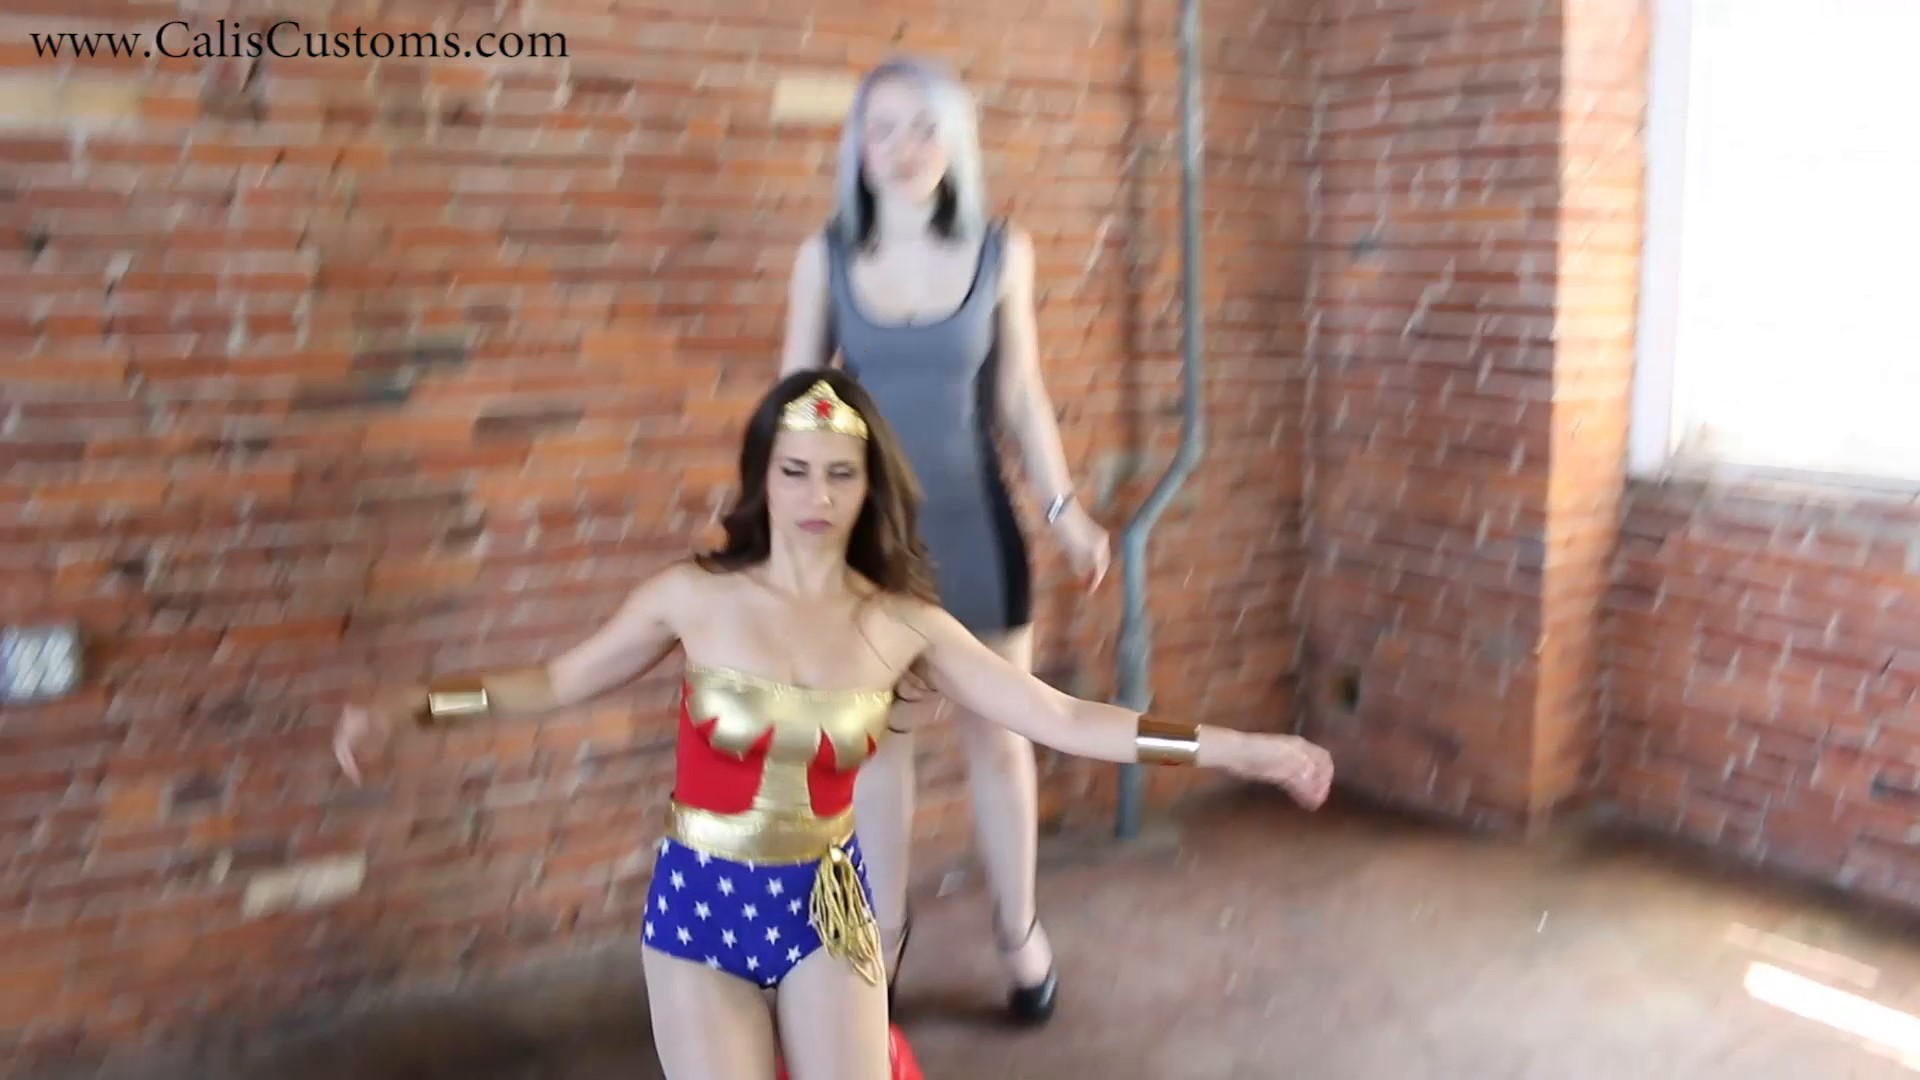 CALI The Wonder Woman KO Trap (5)